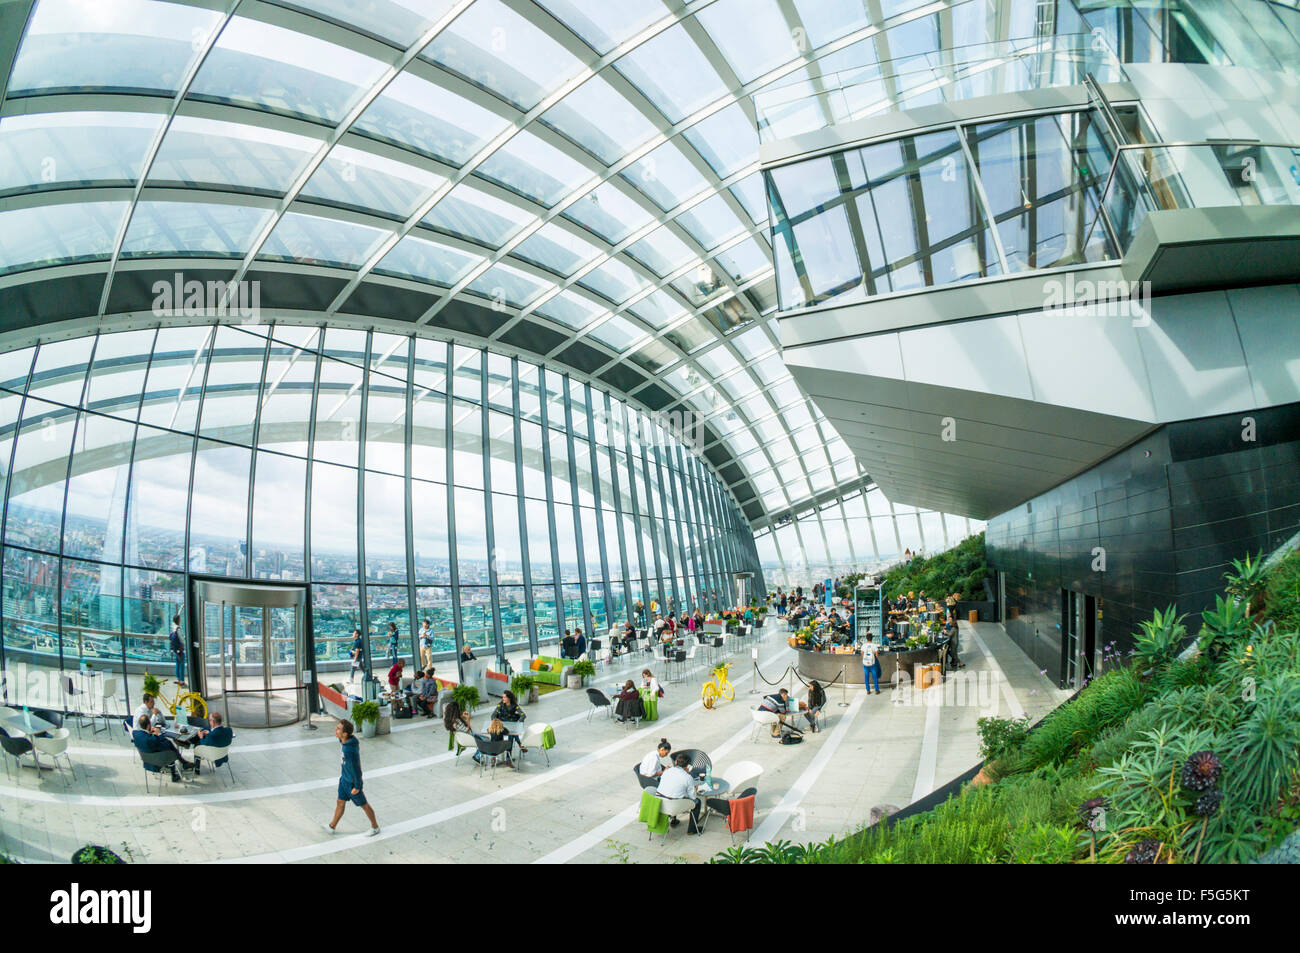 The Sky garden top floor of the Walkie talkie skyscraper building or 20 Fenchurch Street City of London  England - Stock Image